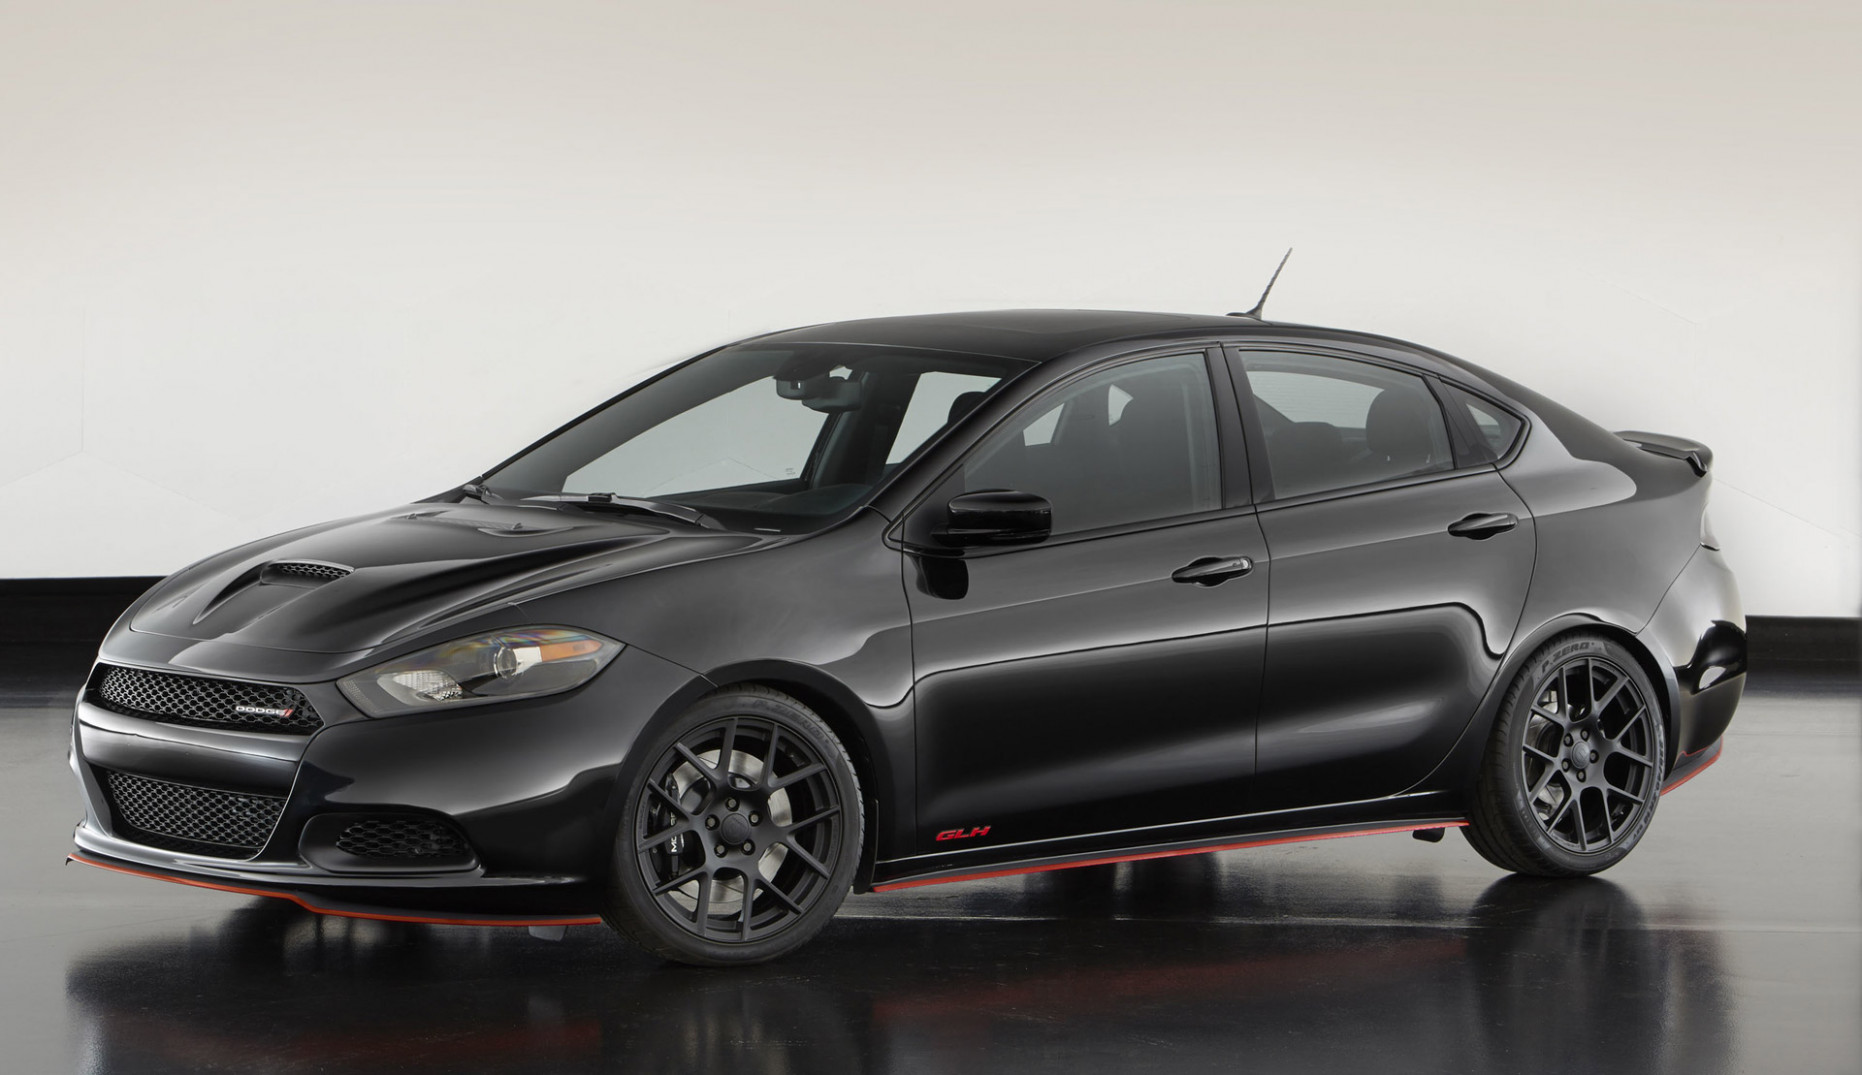 Specs 2022 Dodge Dart SRT